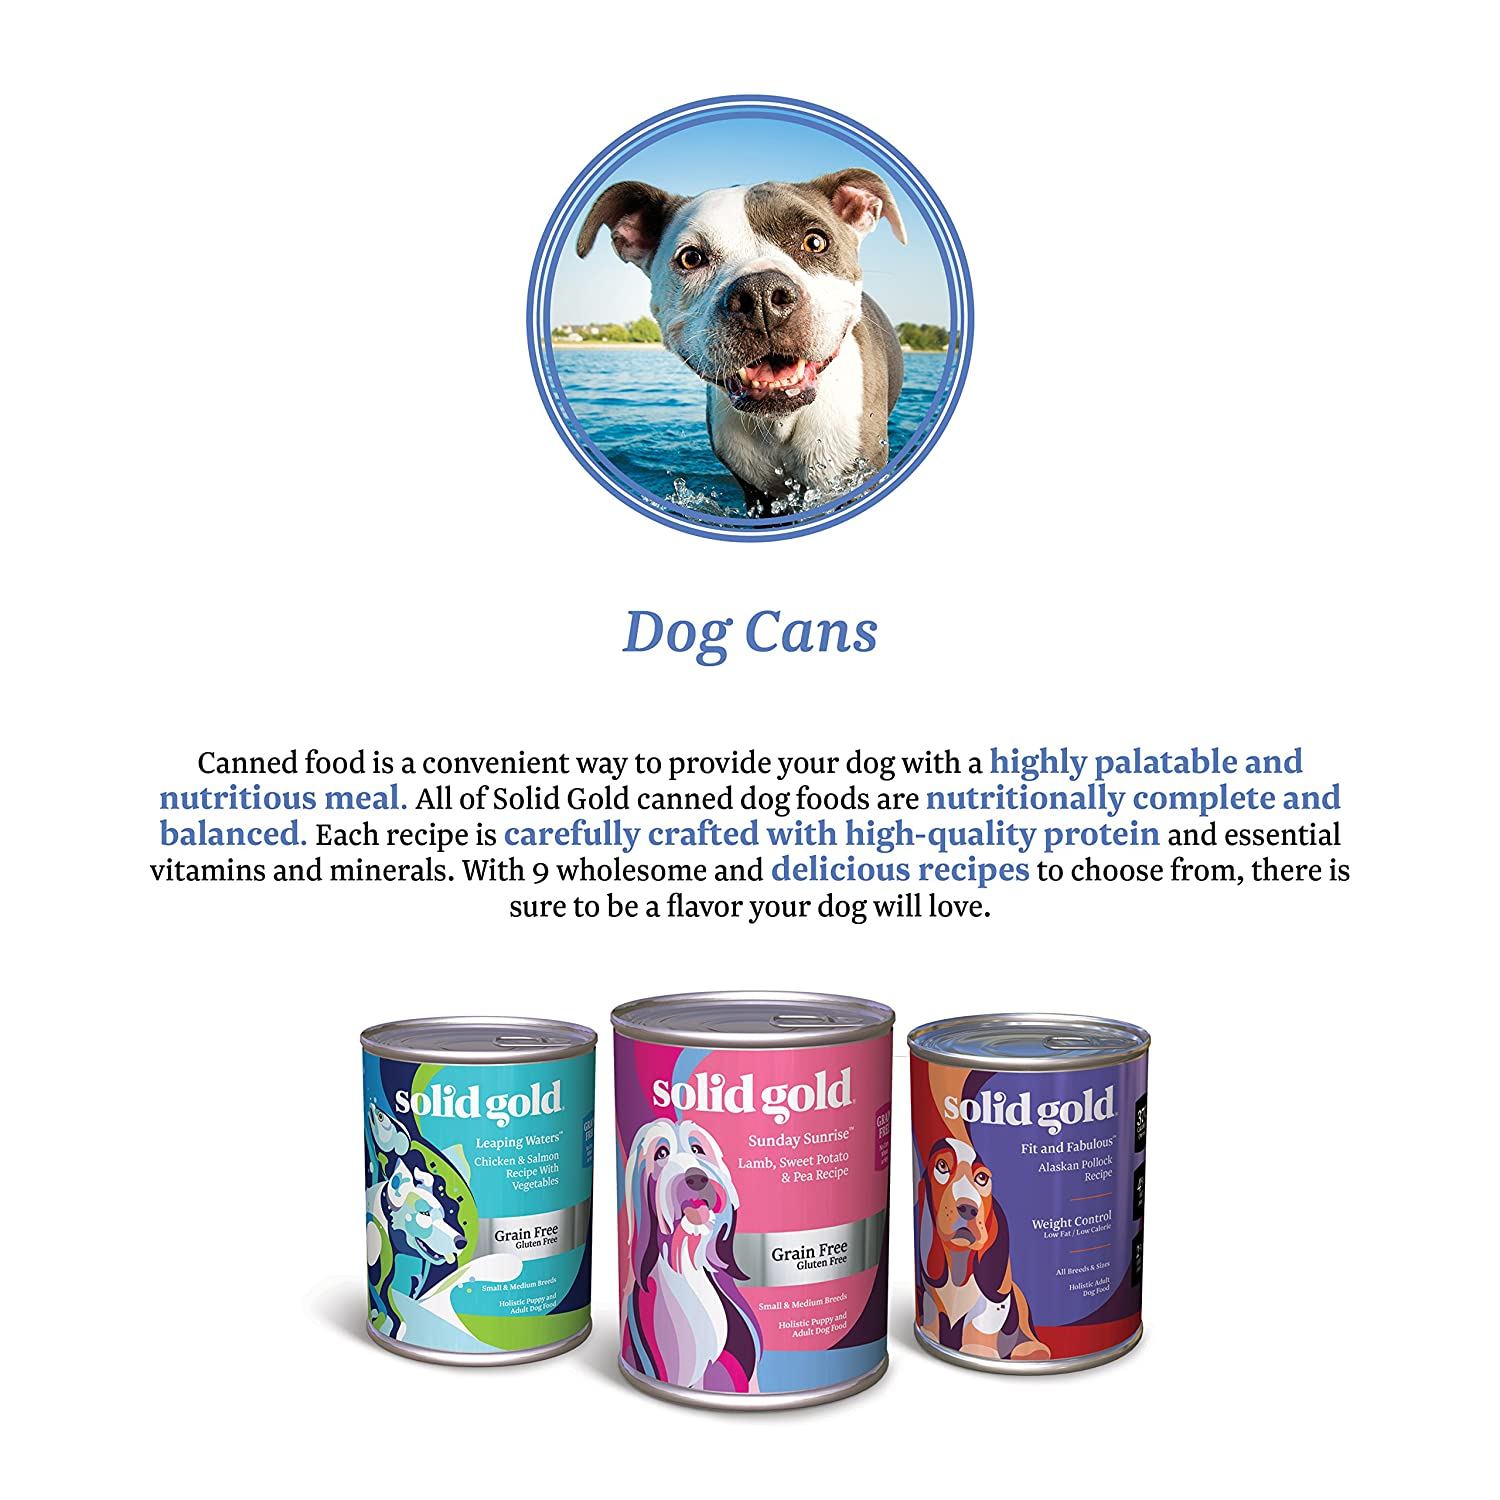 Amazon : Solid Gold Green Cow Beef Tripe & Beef Broth Recipe For Dogs;  Natural, Holistic & Grain Freeplete & Balanced Meal Or Topper;